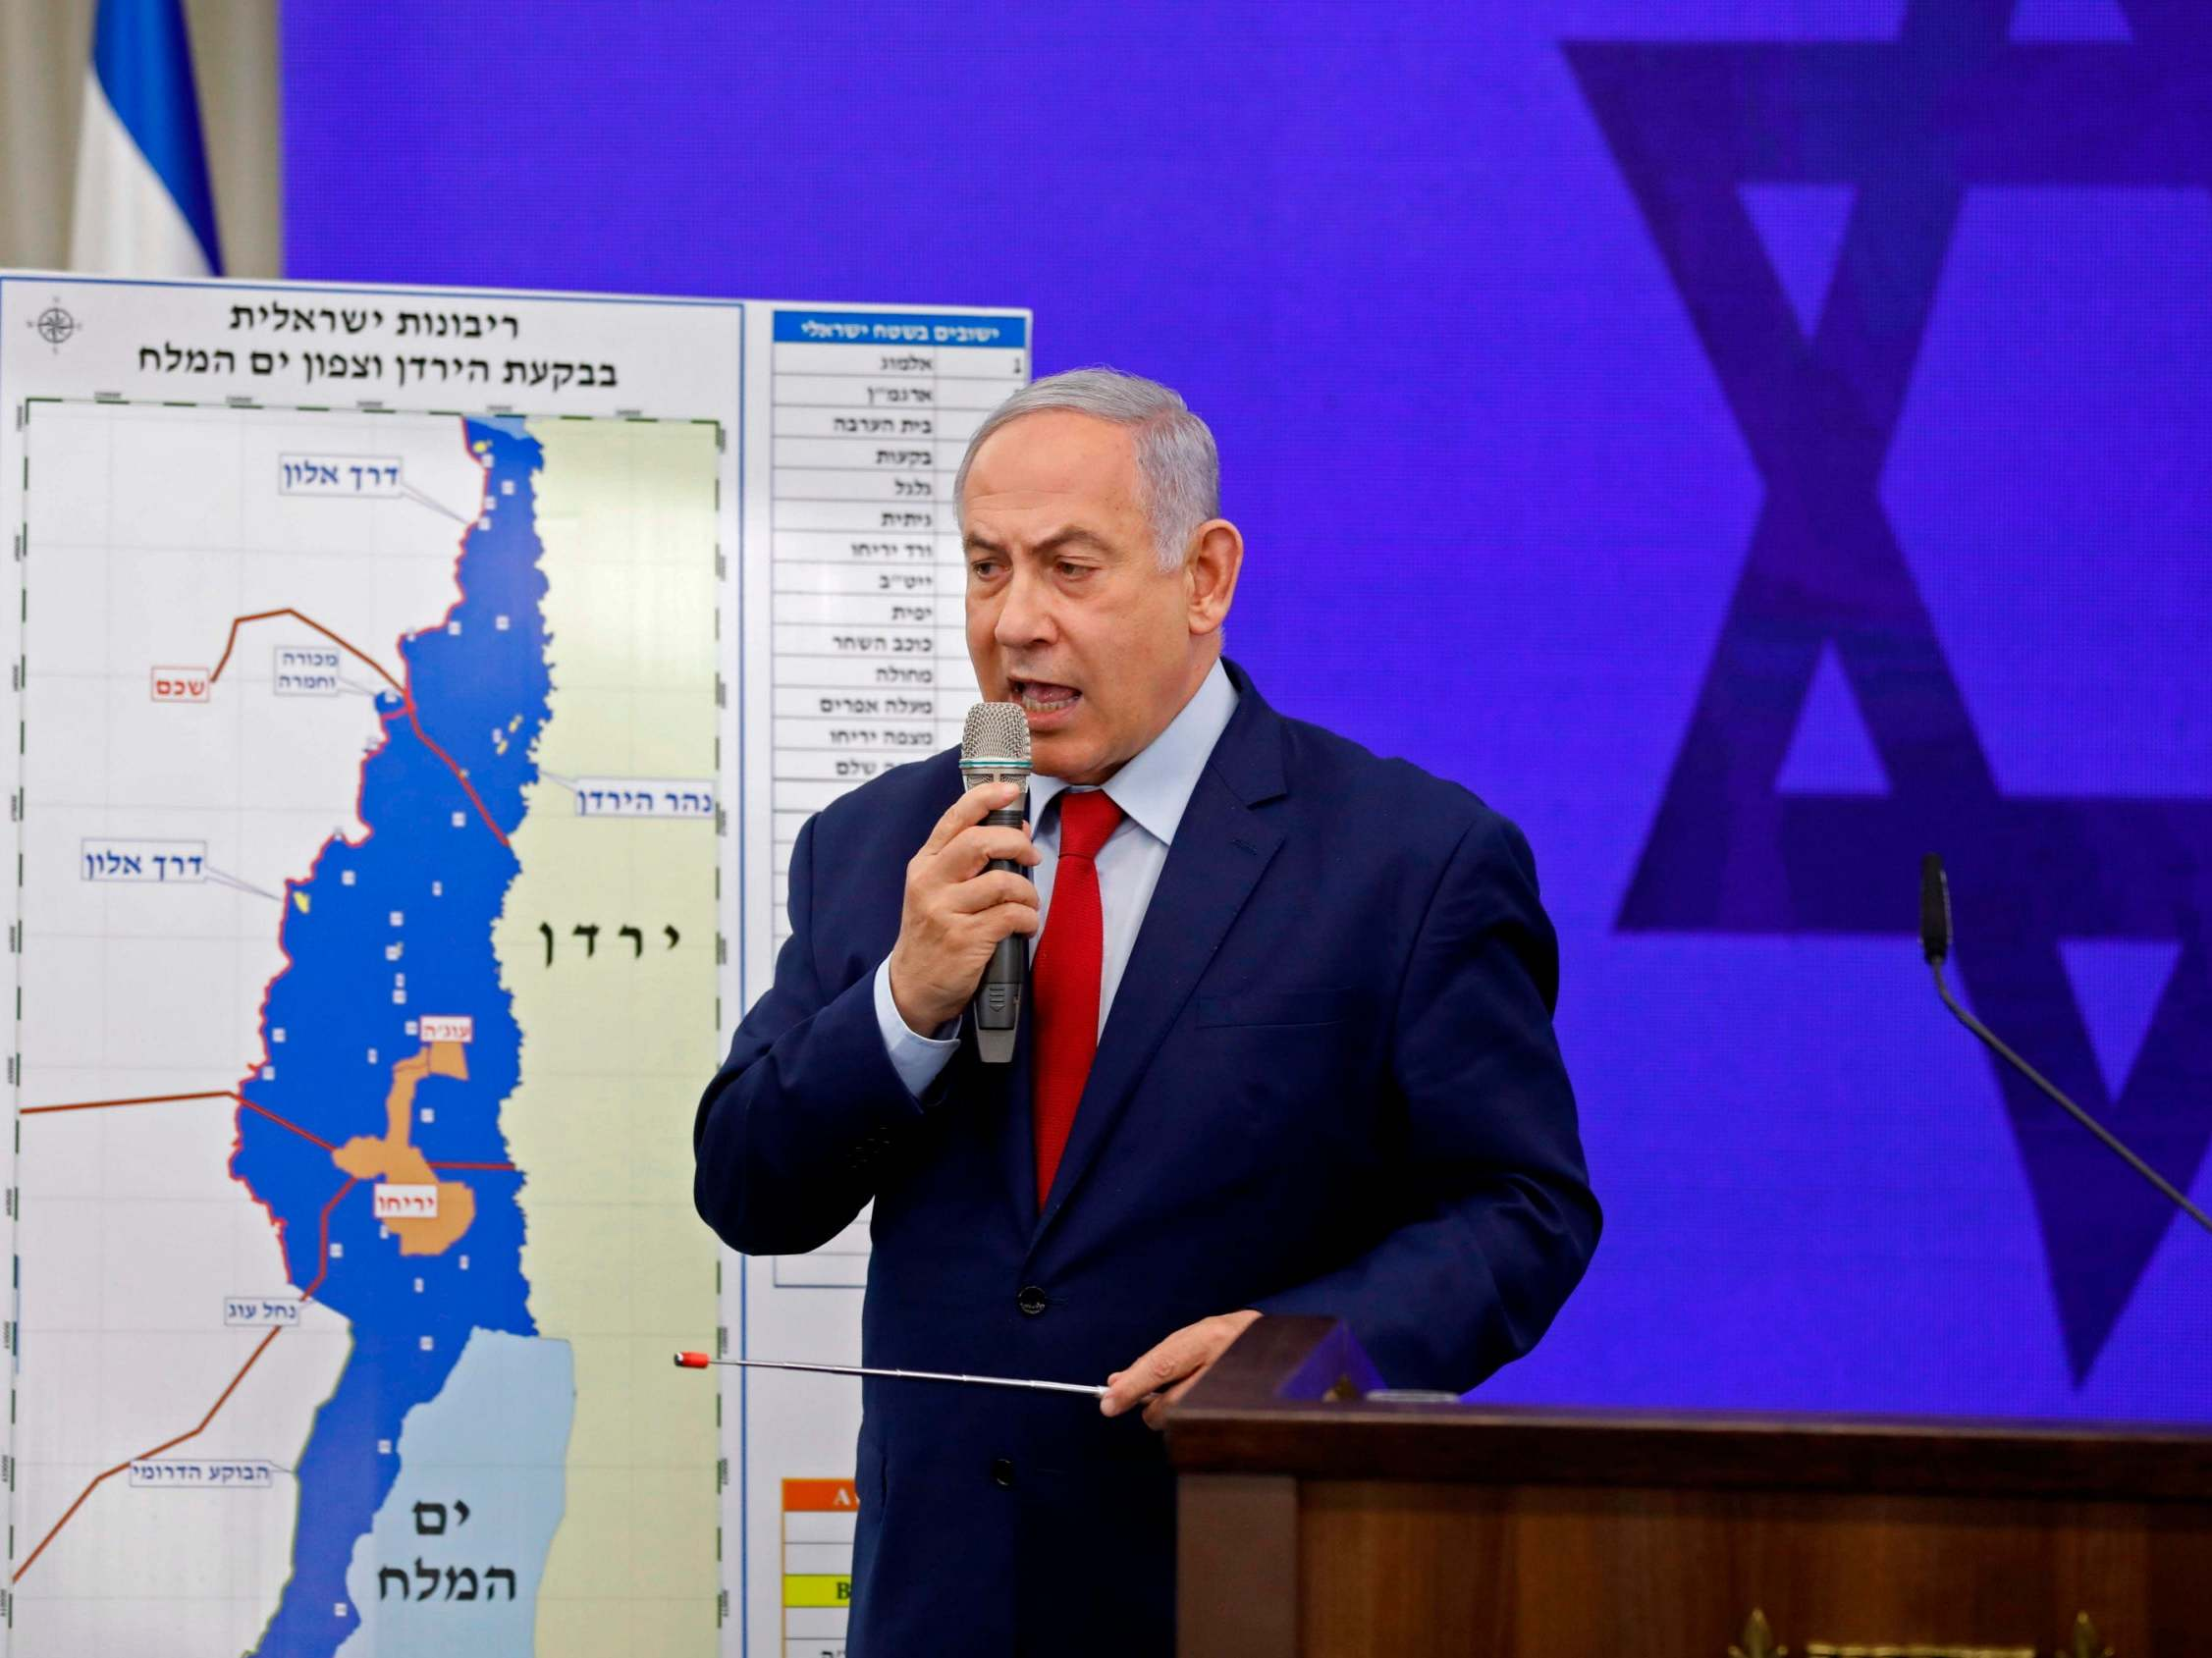 Israel's Netanyahu promises to annex Jordan Valley, in occupied West Bank, if elected